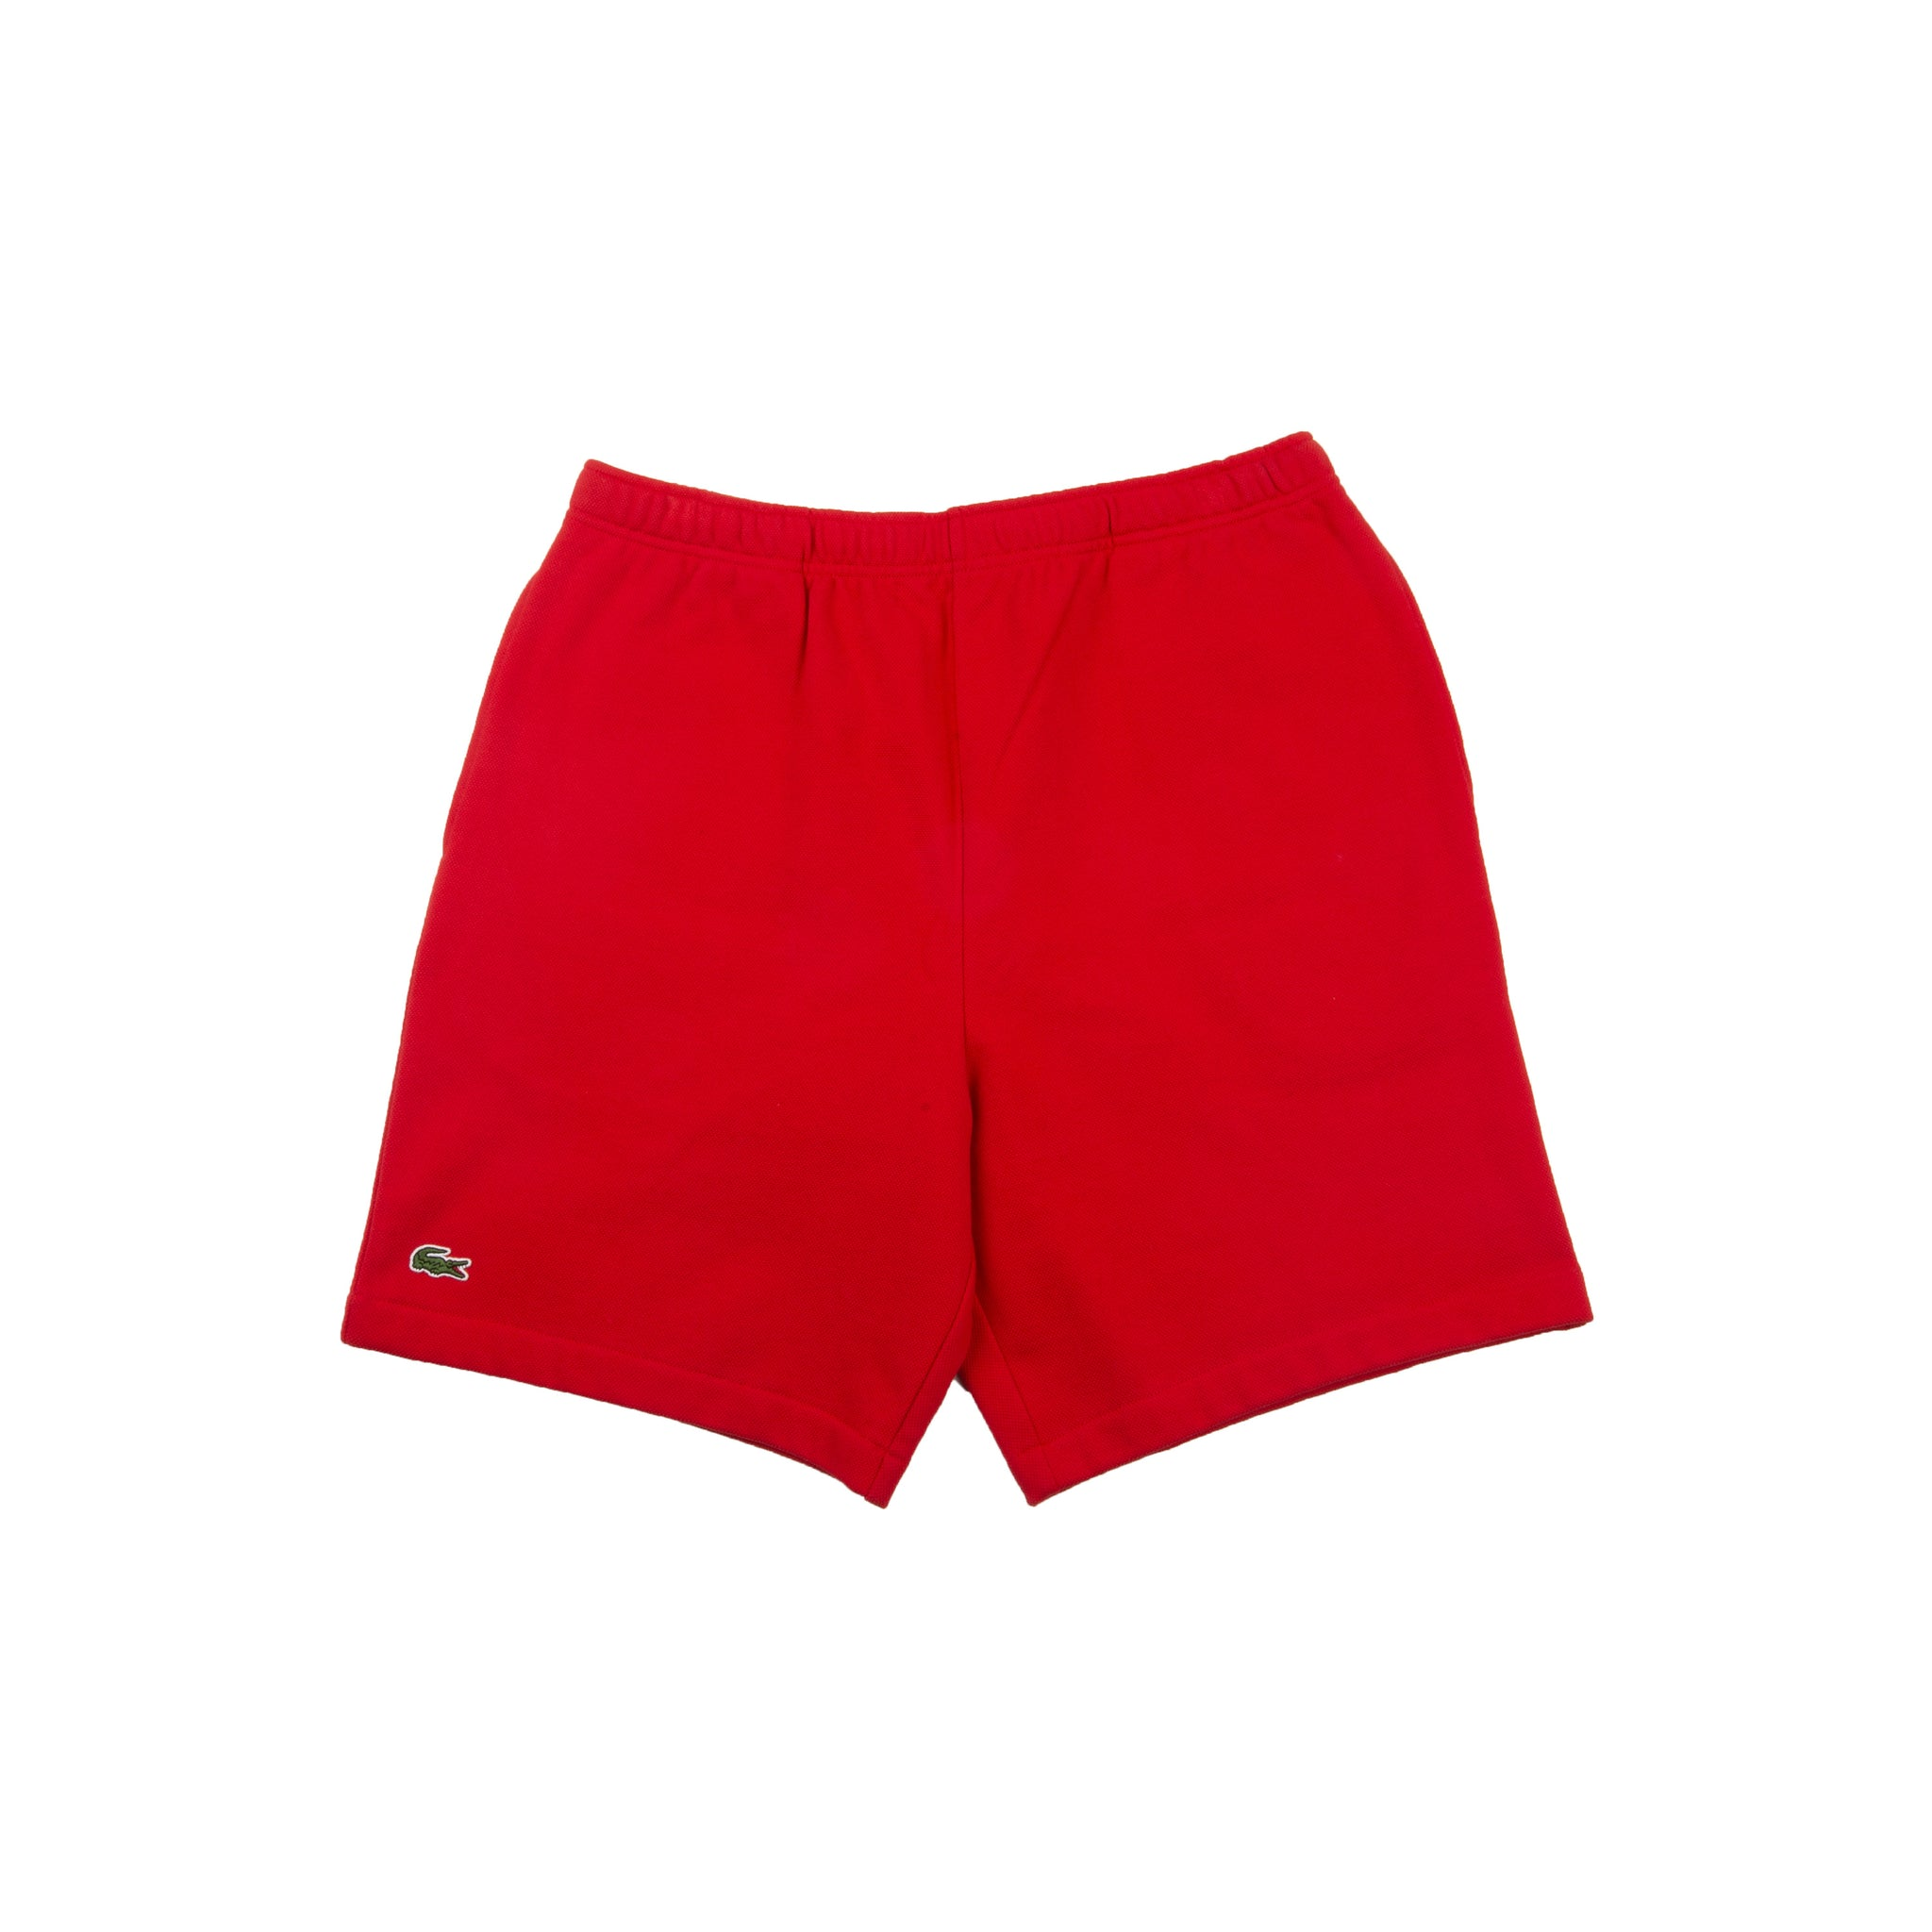 Supreme Red Lacoste Pique Shorts